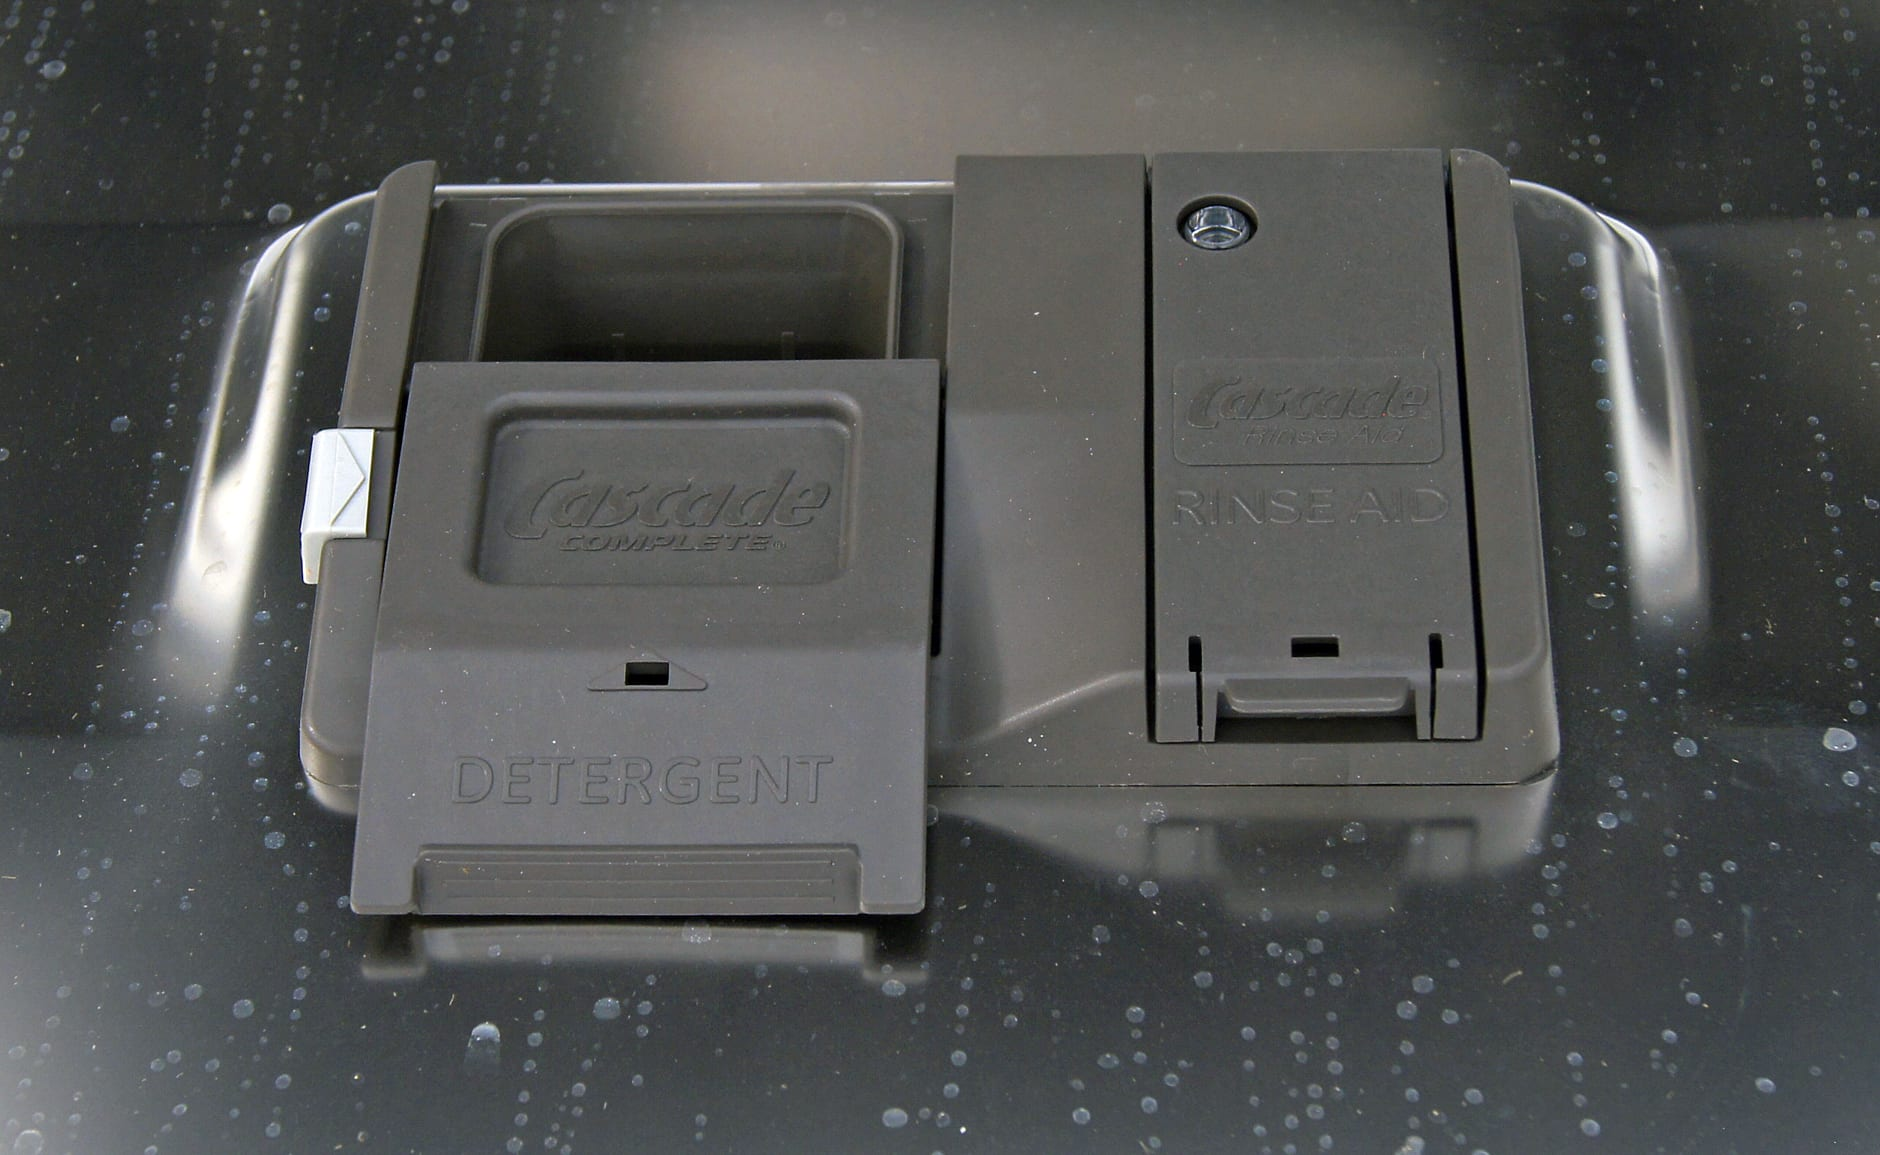 GE Monogram ZDT870SSFSS's detergent and rinse aid dispenser